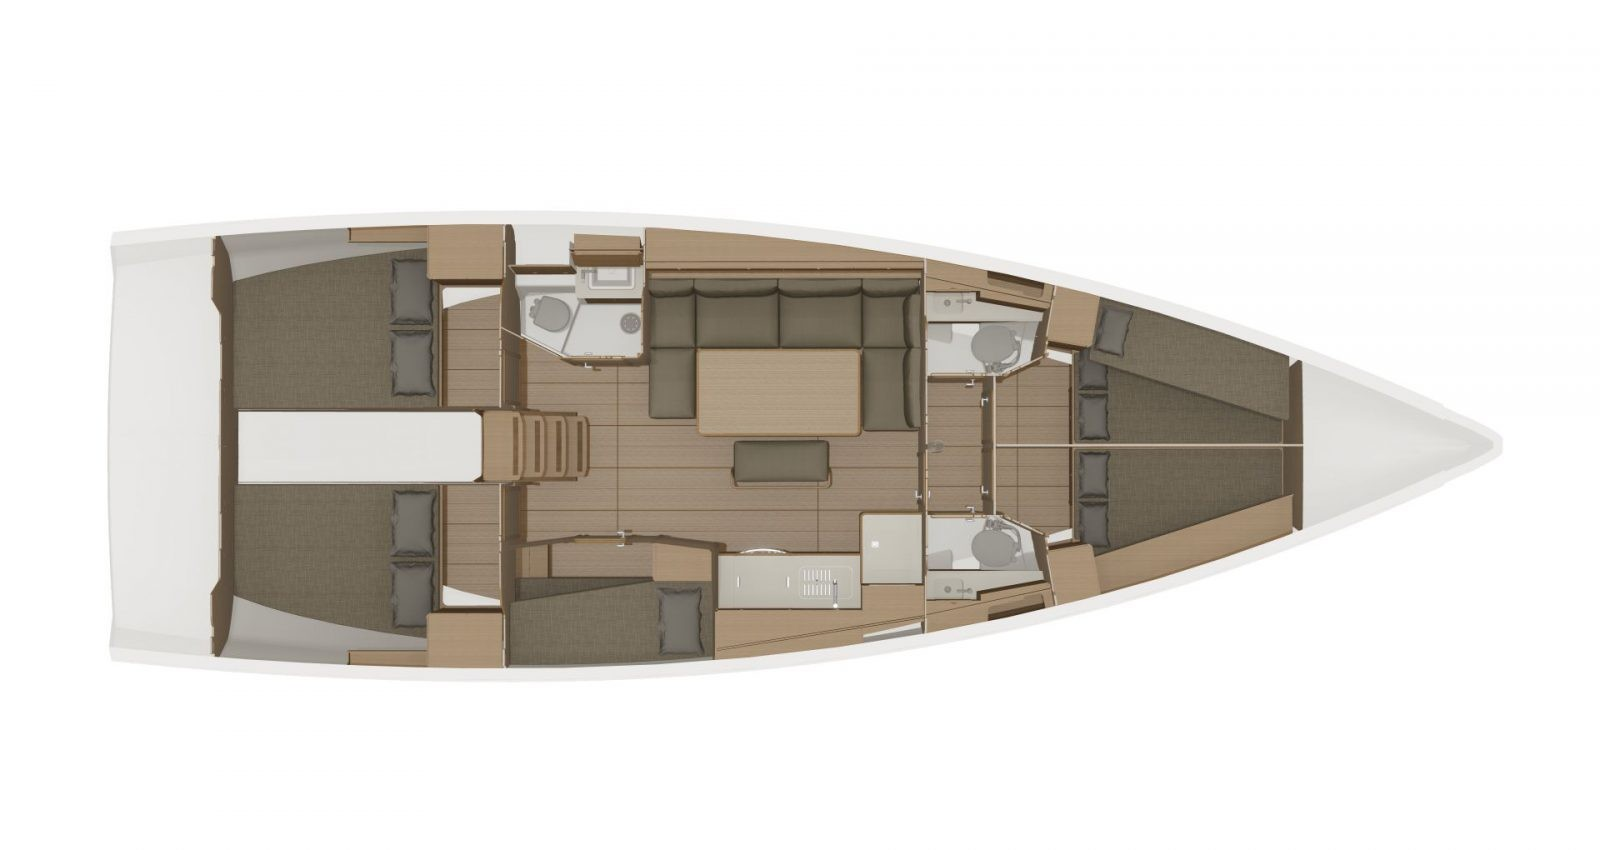 Dufour 460 GL Layout 4